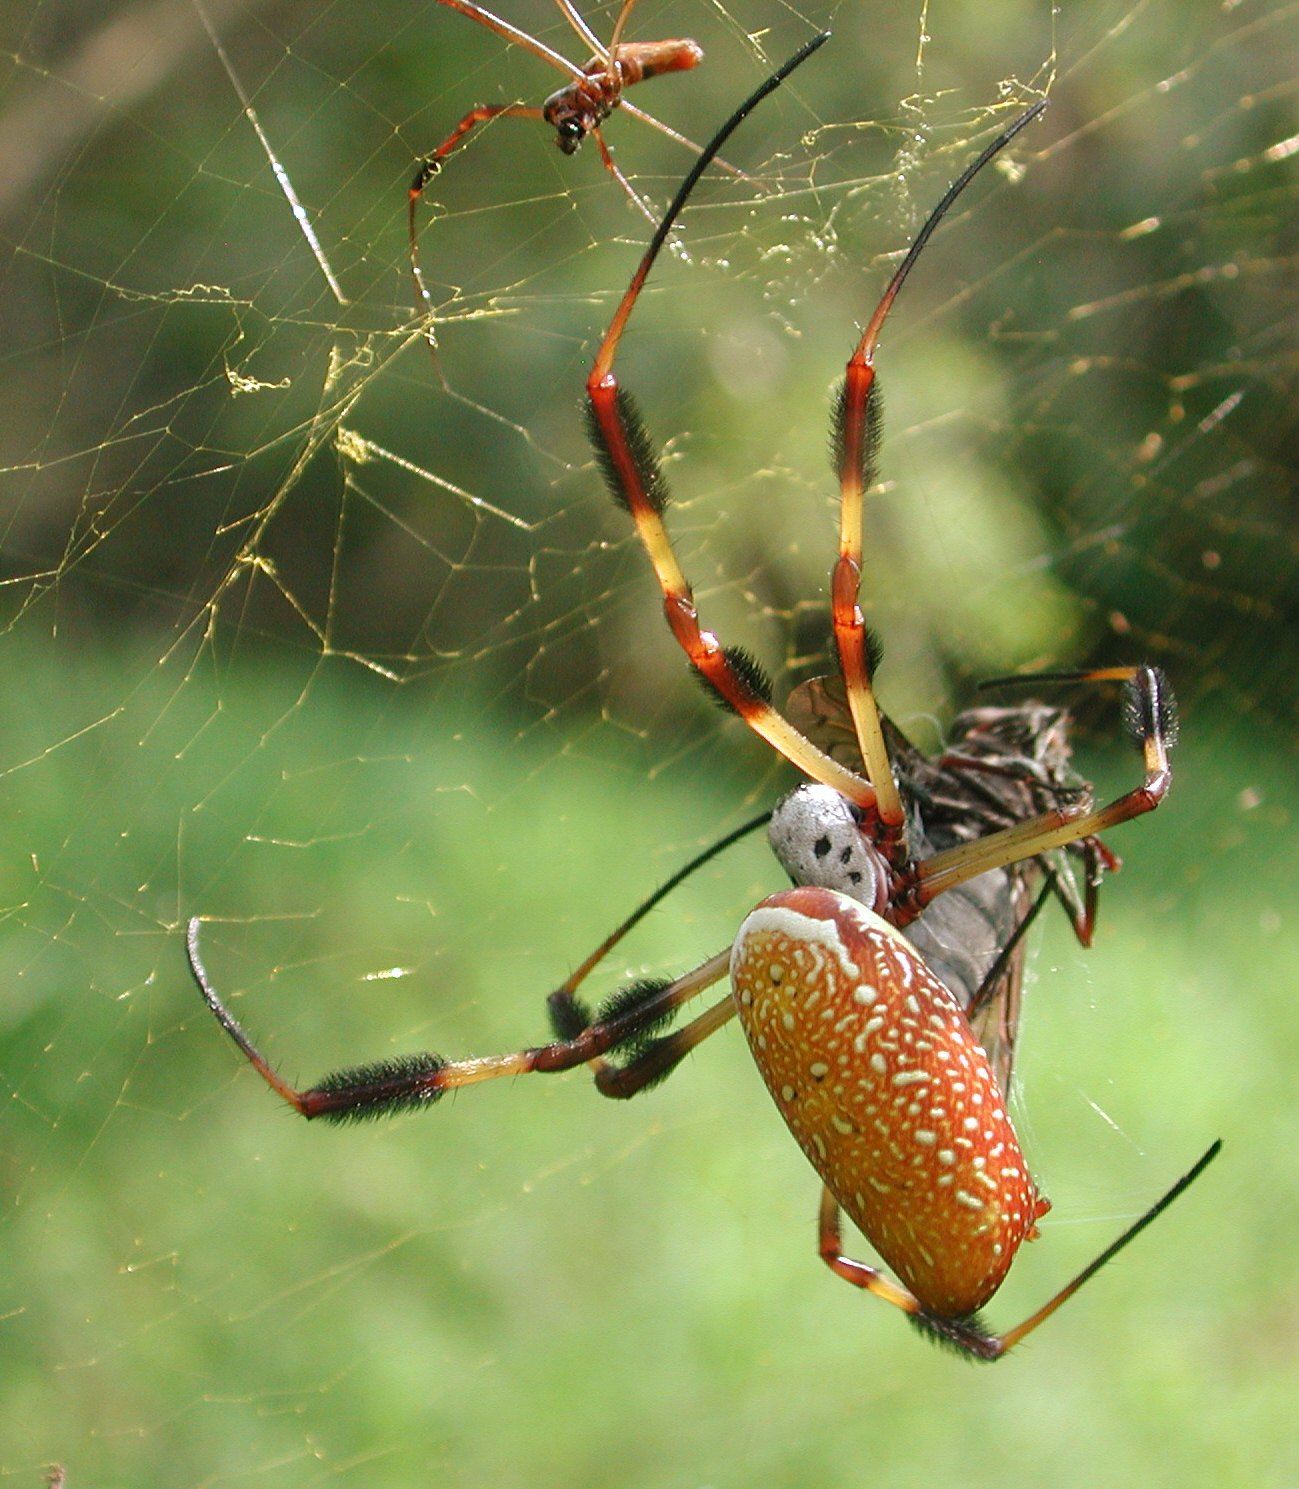 https://upload.wikimedia.org/wikipedia/commons/d/d2/Golden_silk_spider_-_Nephila_clavipes.jpg